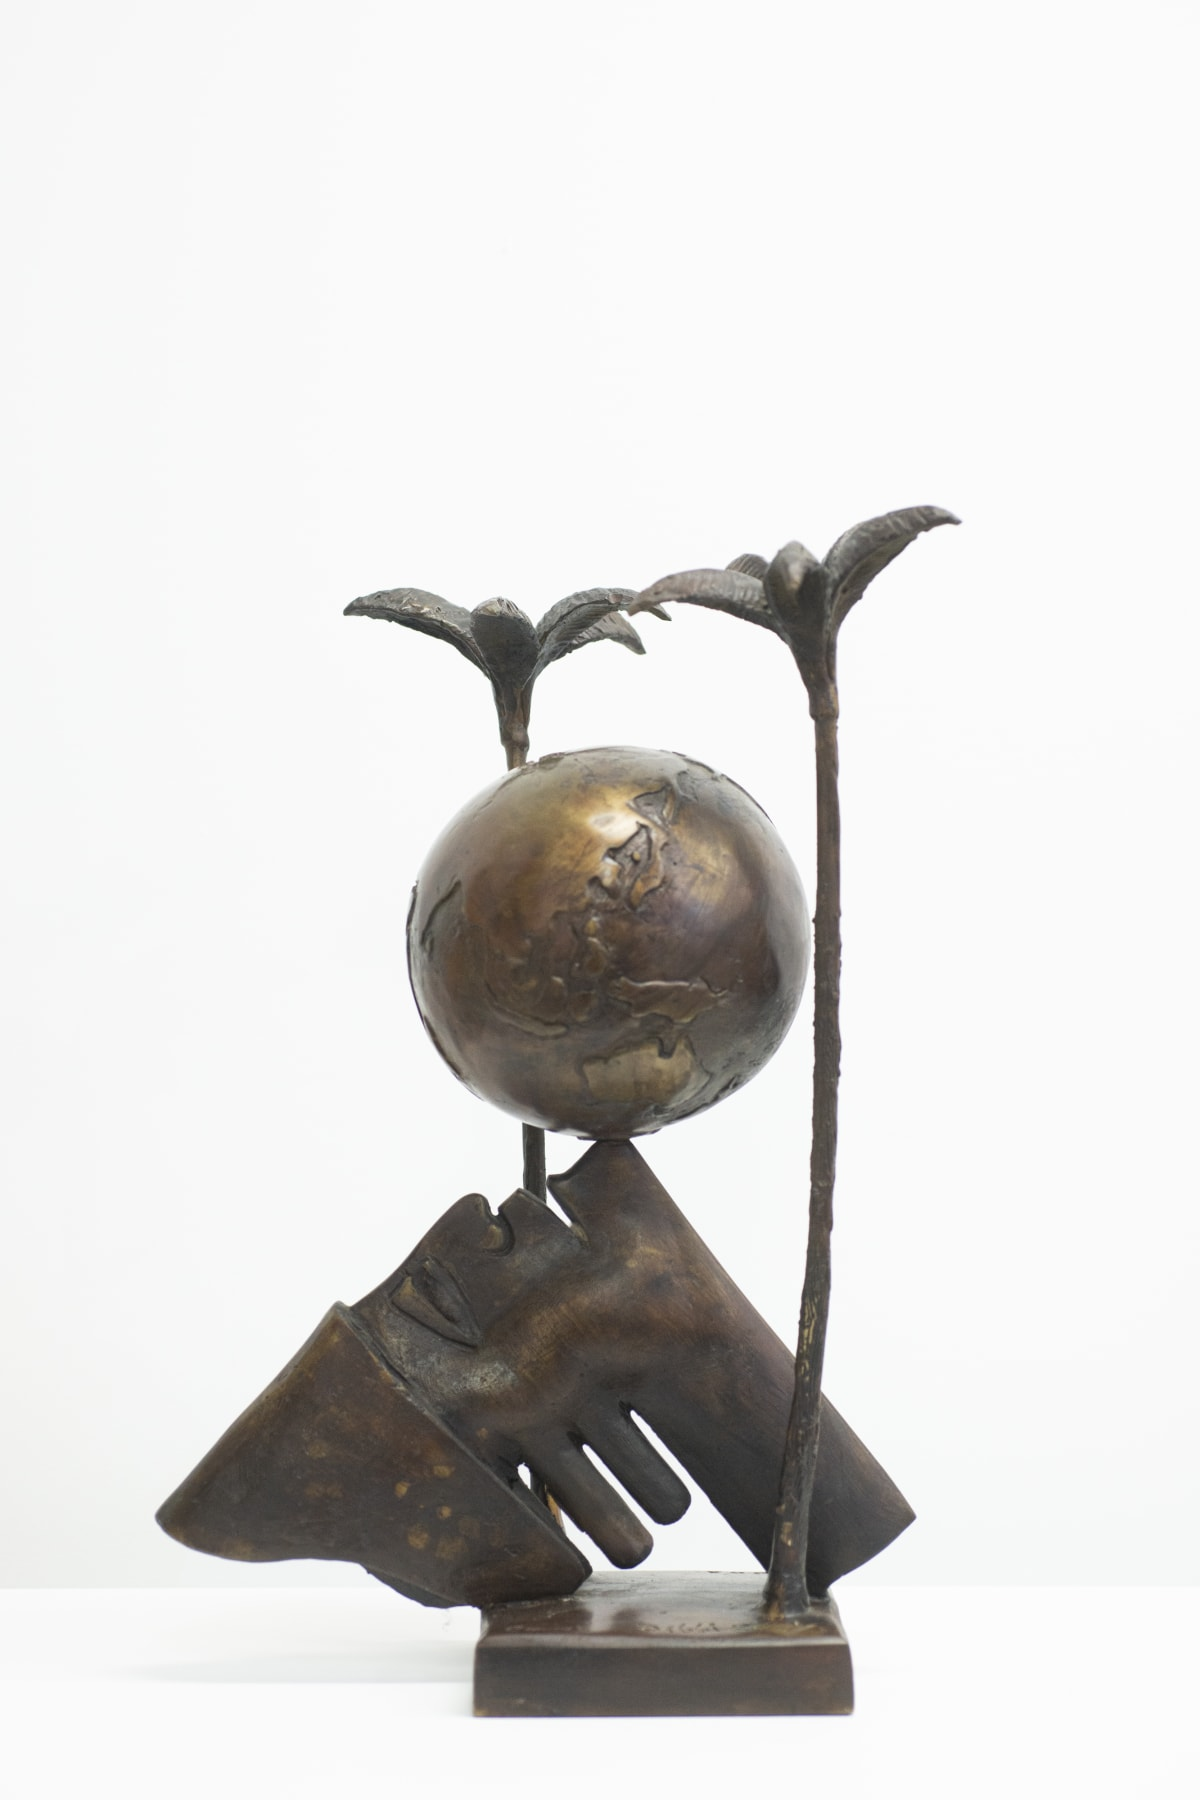 Paul DIBBLE Untitled, 2003 cast patinated bronze 500 x 320 x 320mm